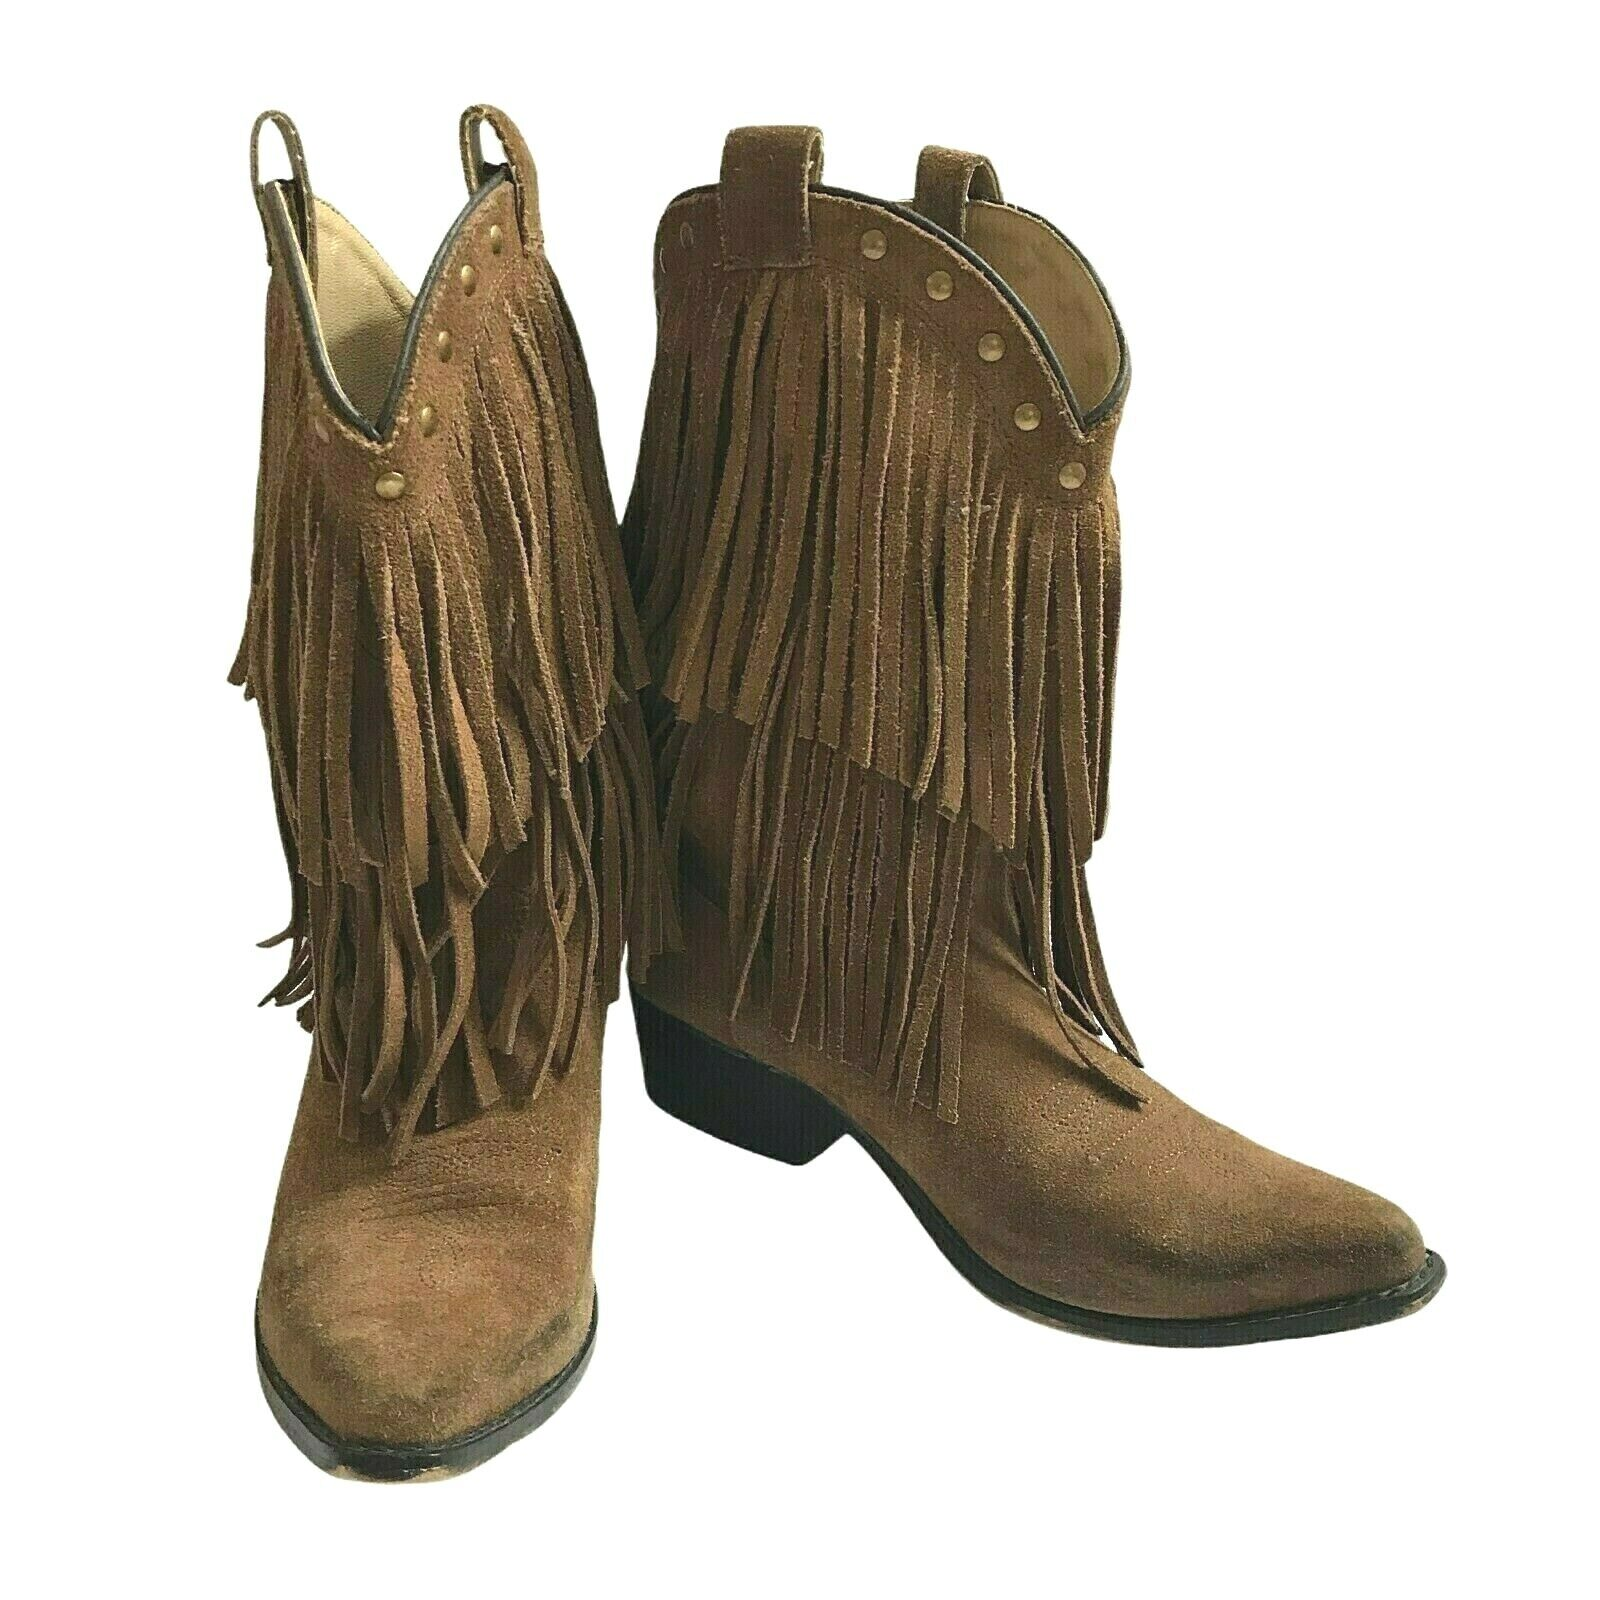 Smoky Mountain Boots Wisteria Fringed Western Boots Girls 4.5 M Womens 6 M Brown